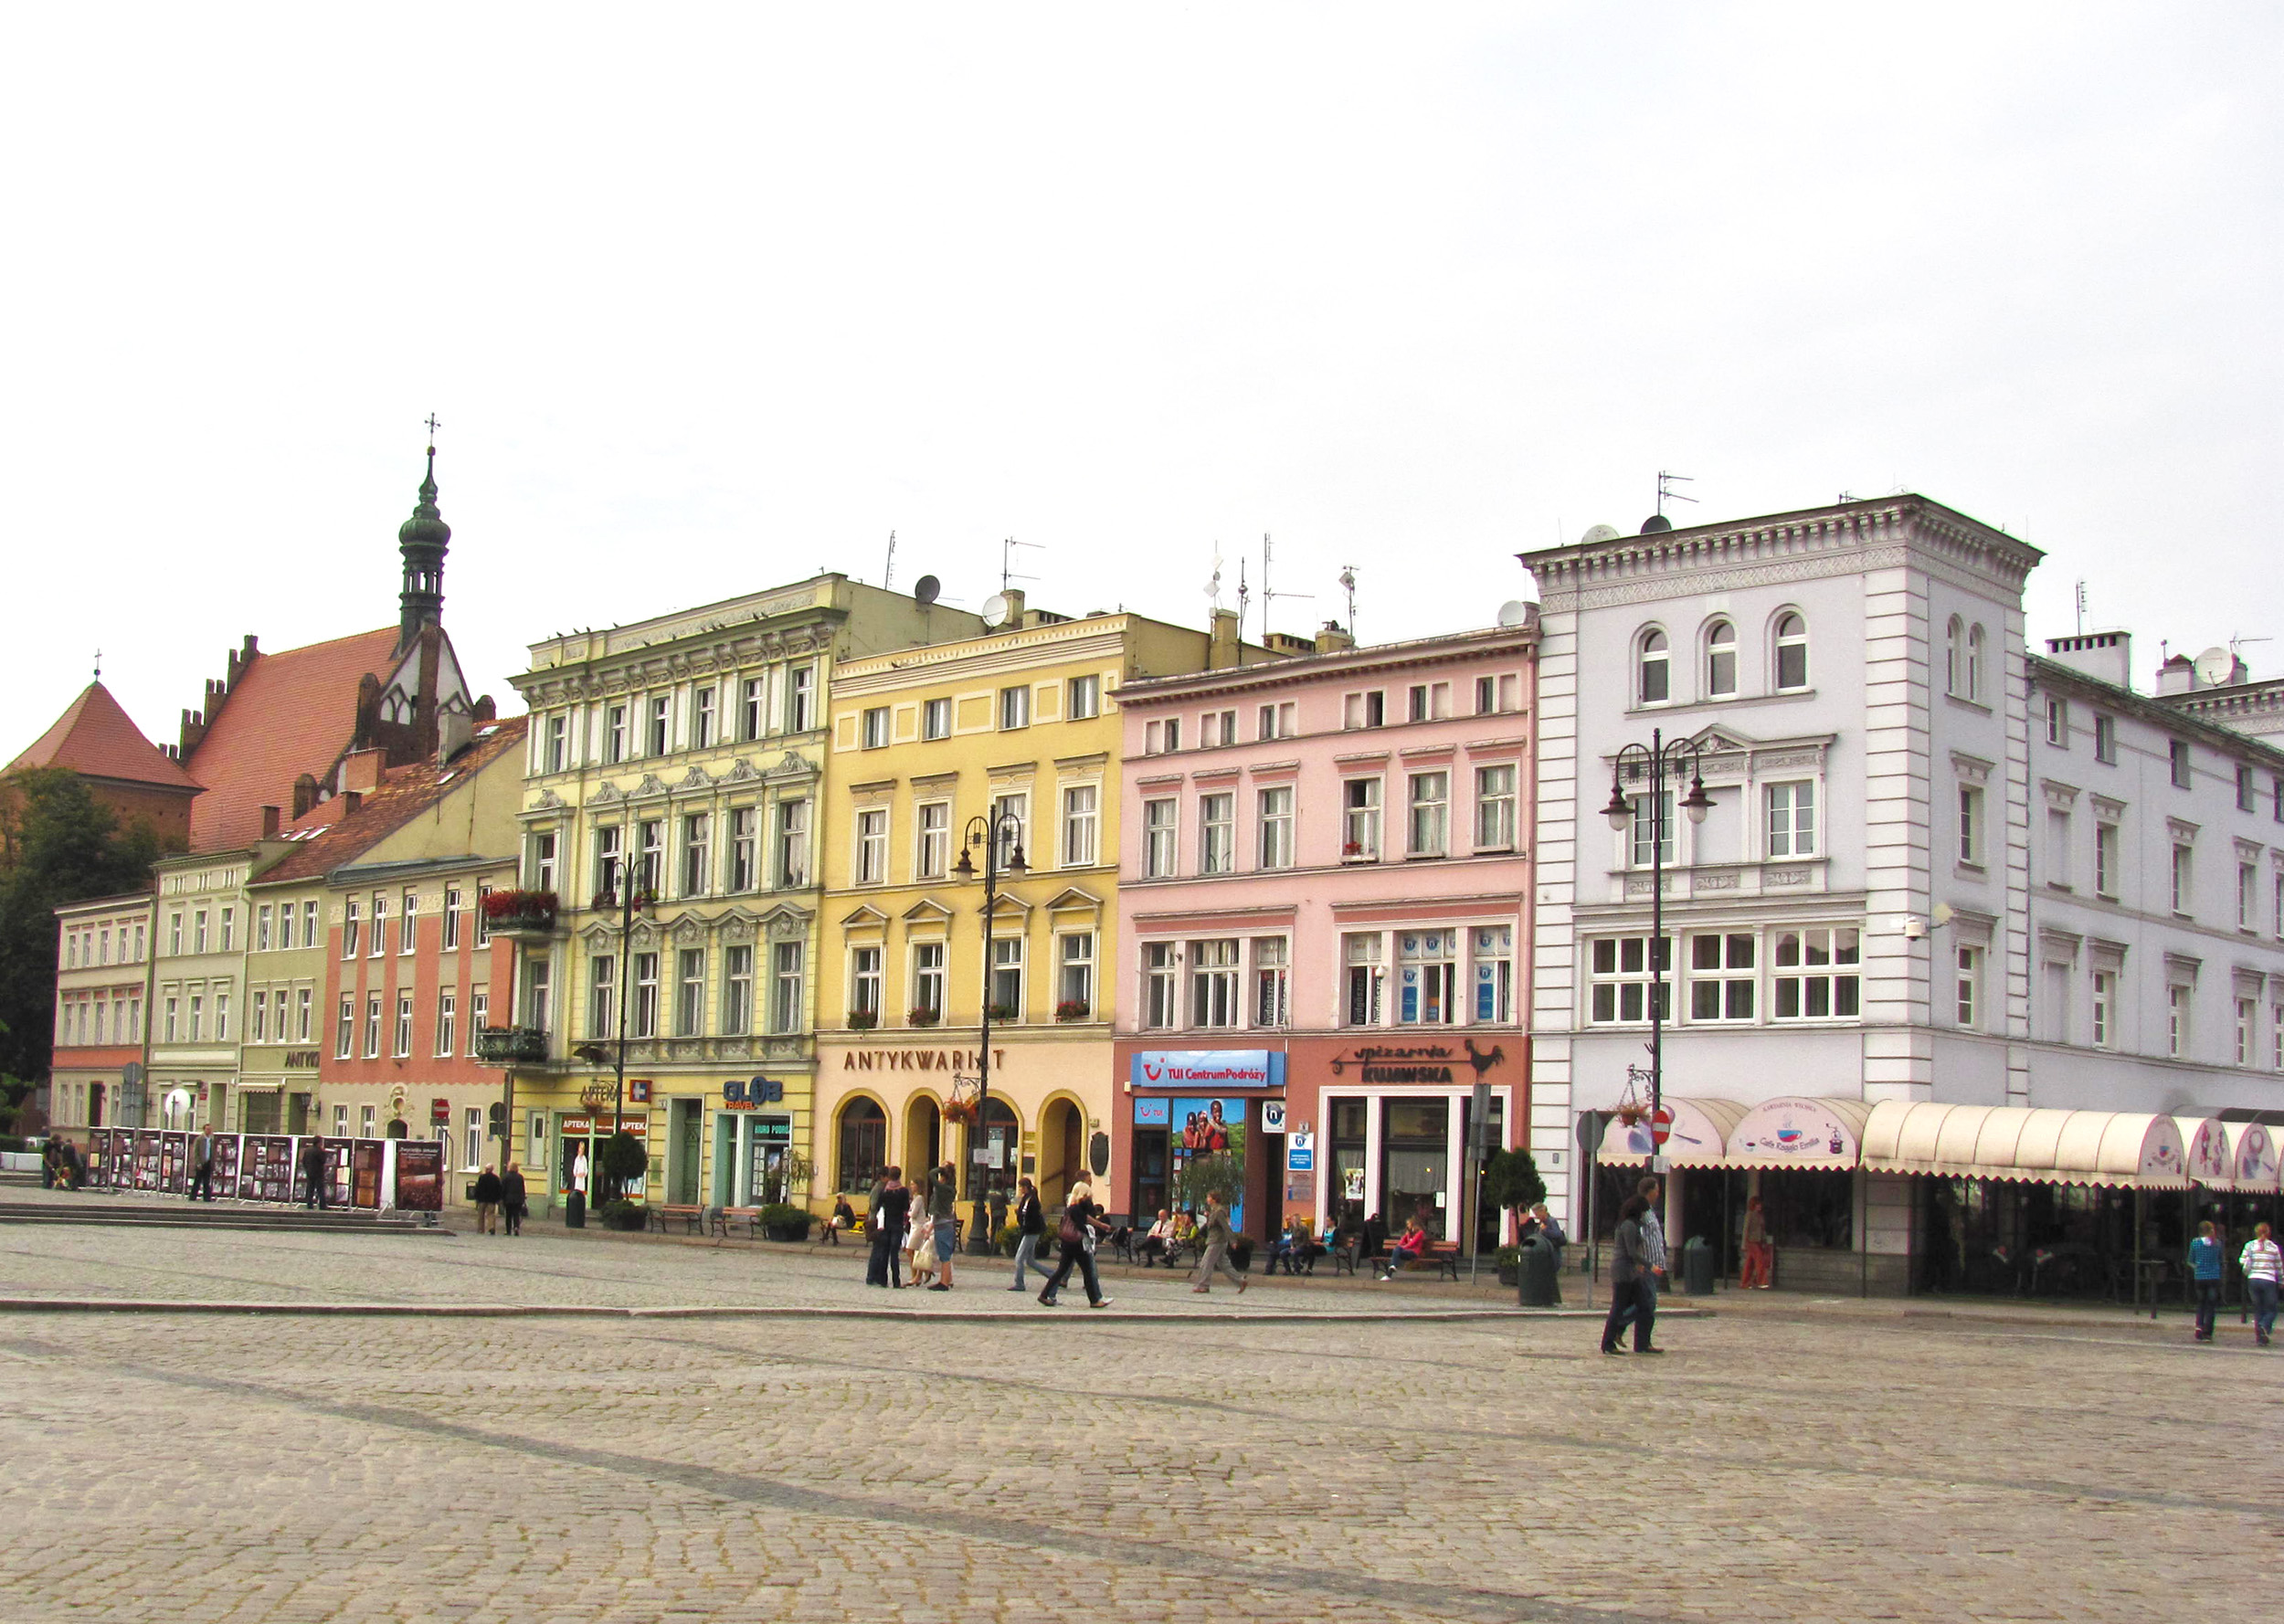 File:Bydgoszcz old town.jpg - Wikimedia Commons